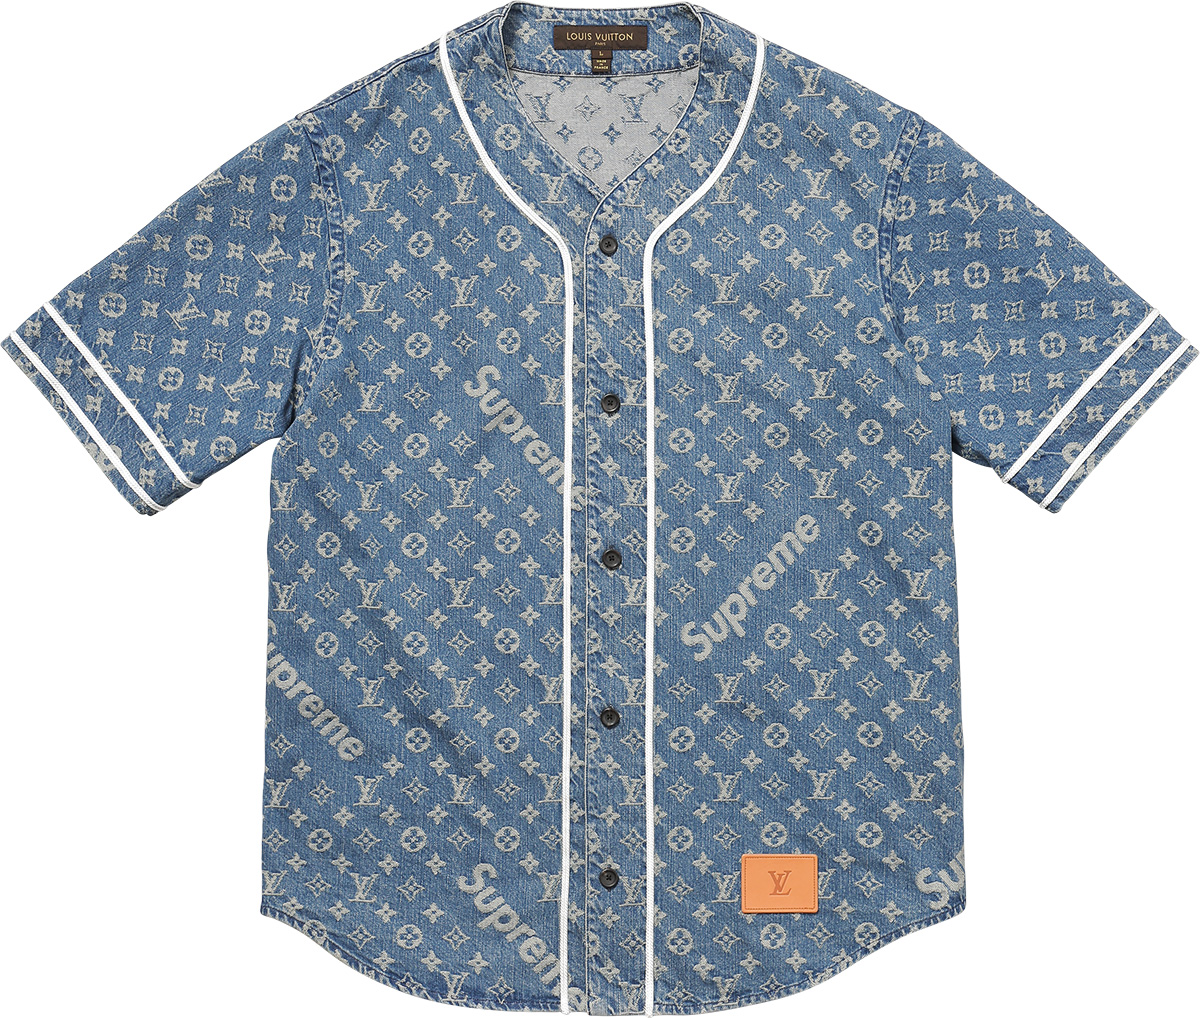 supreme louis vuitton supreme jacquard denim baseball jersey. Black Bedroom Furniture Sets. Home Design Ideas